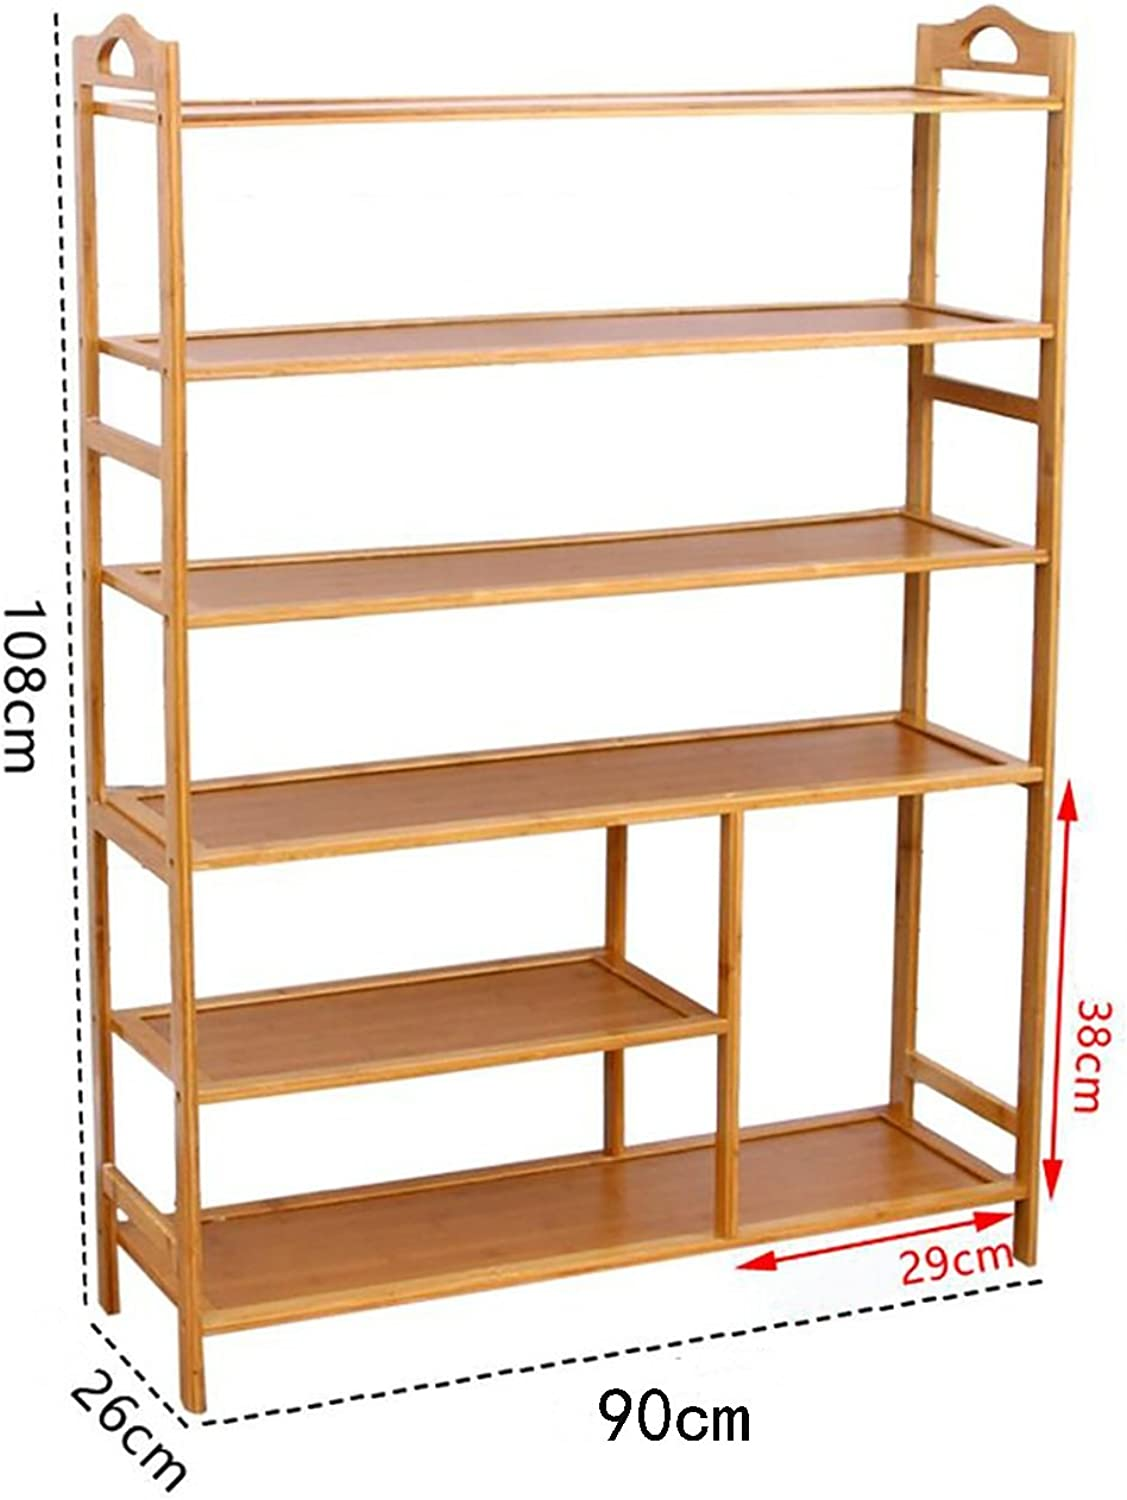 shoes Bench Organizing Rack shoes Rack Multi - Storey shoes Cabinet Wooden Display Stand Solid Wood shoes Cabinet Multi - Storey Storage shoes Racks (color   2, Size   90CM)